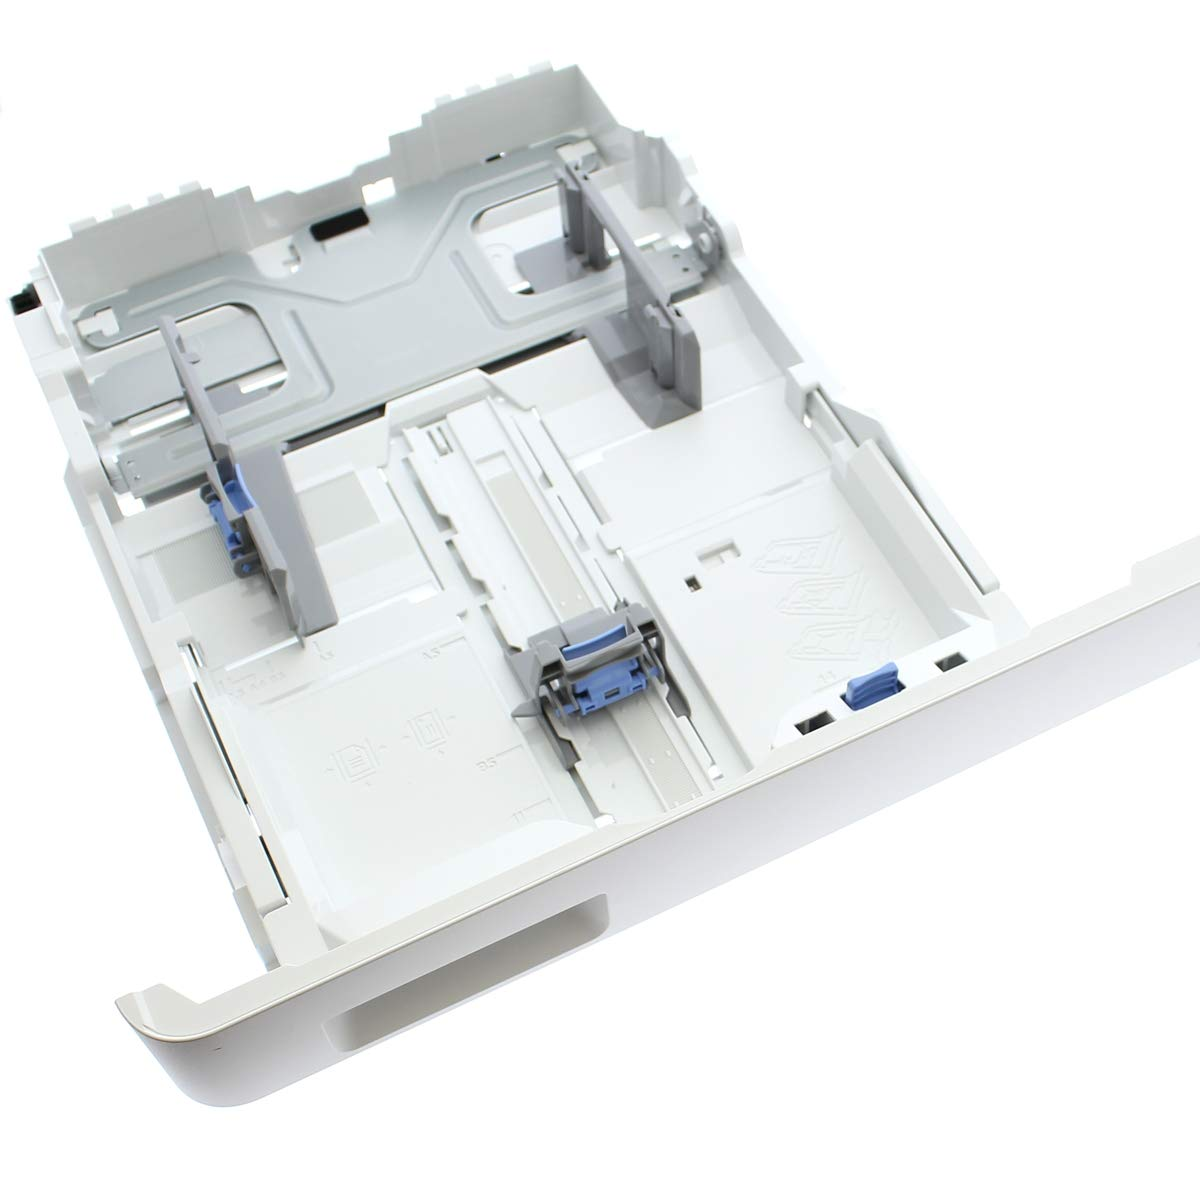 RM2-6377 250 Sheet Input Paper Tray #2 for Color Laserjet Pro M452NW M452DN M452DW M477FNW M477FDN M477FDW by PrinterParts4you